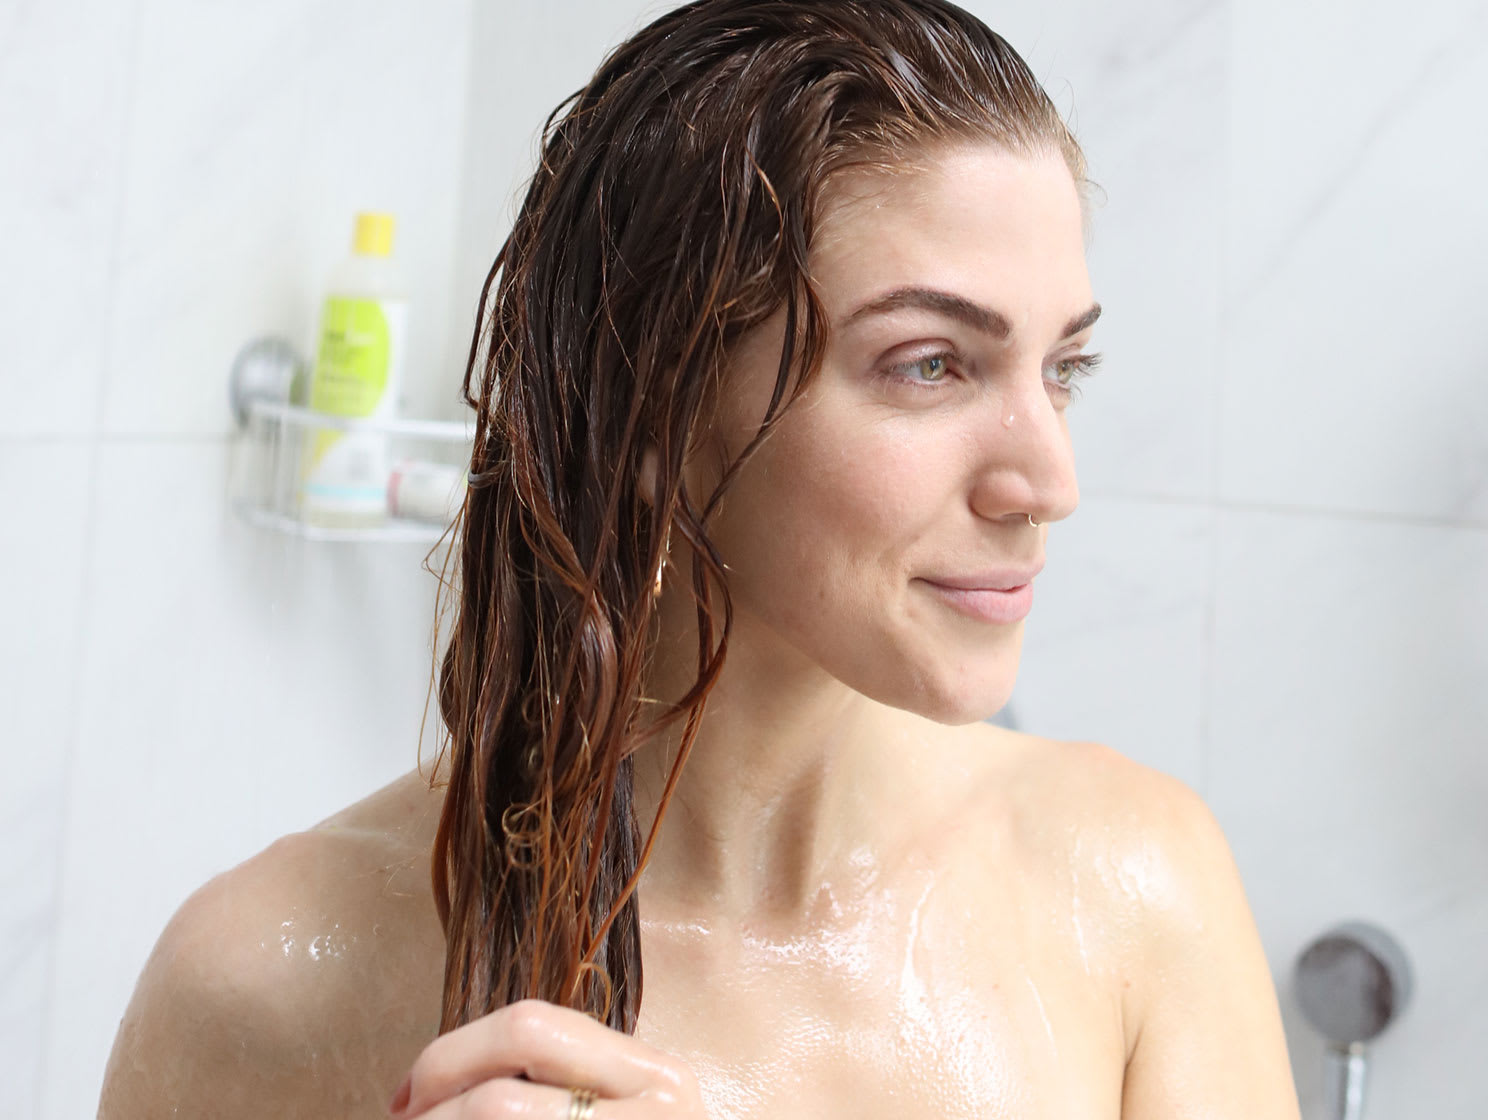 wavy redhead girl in shower